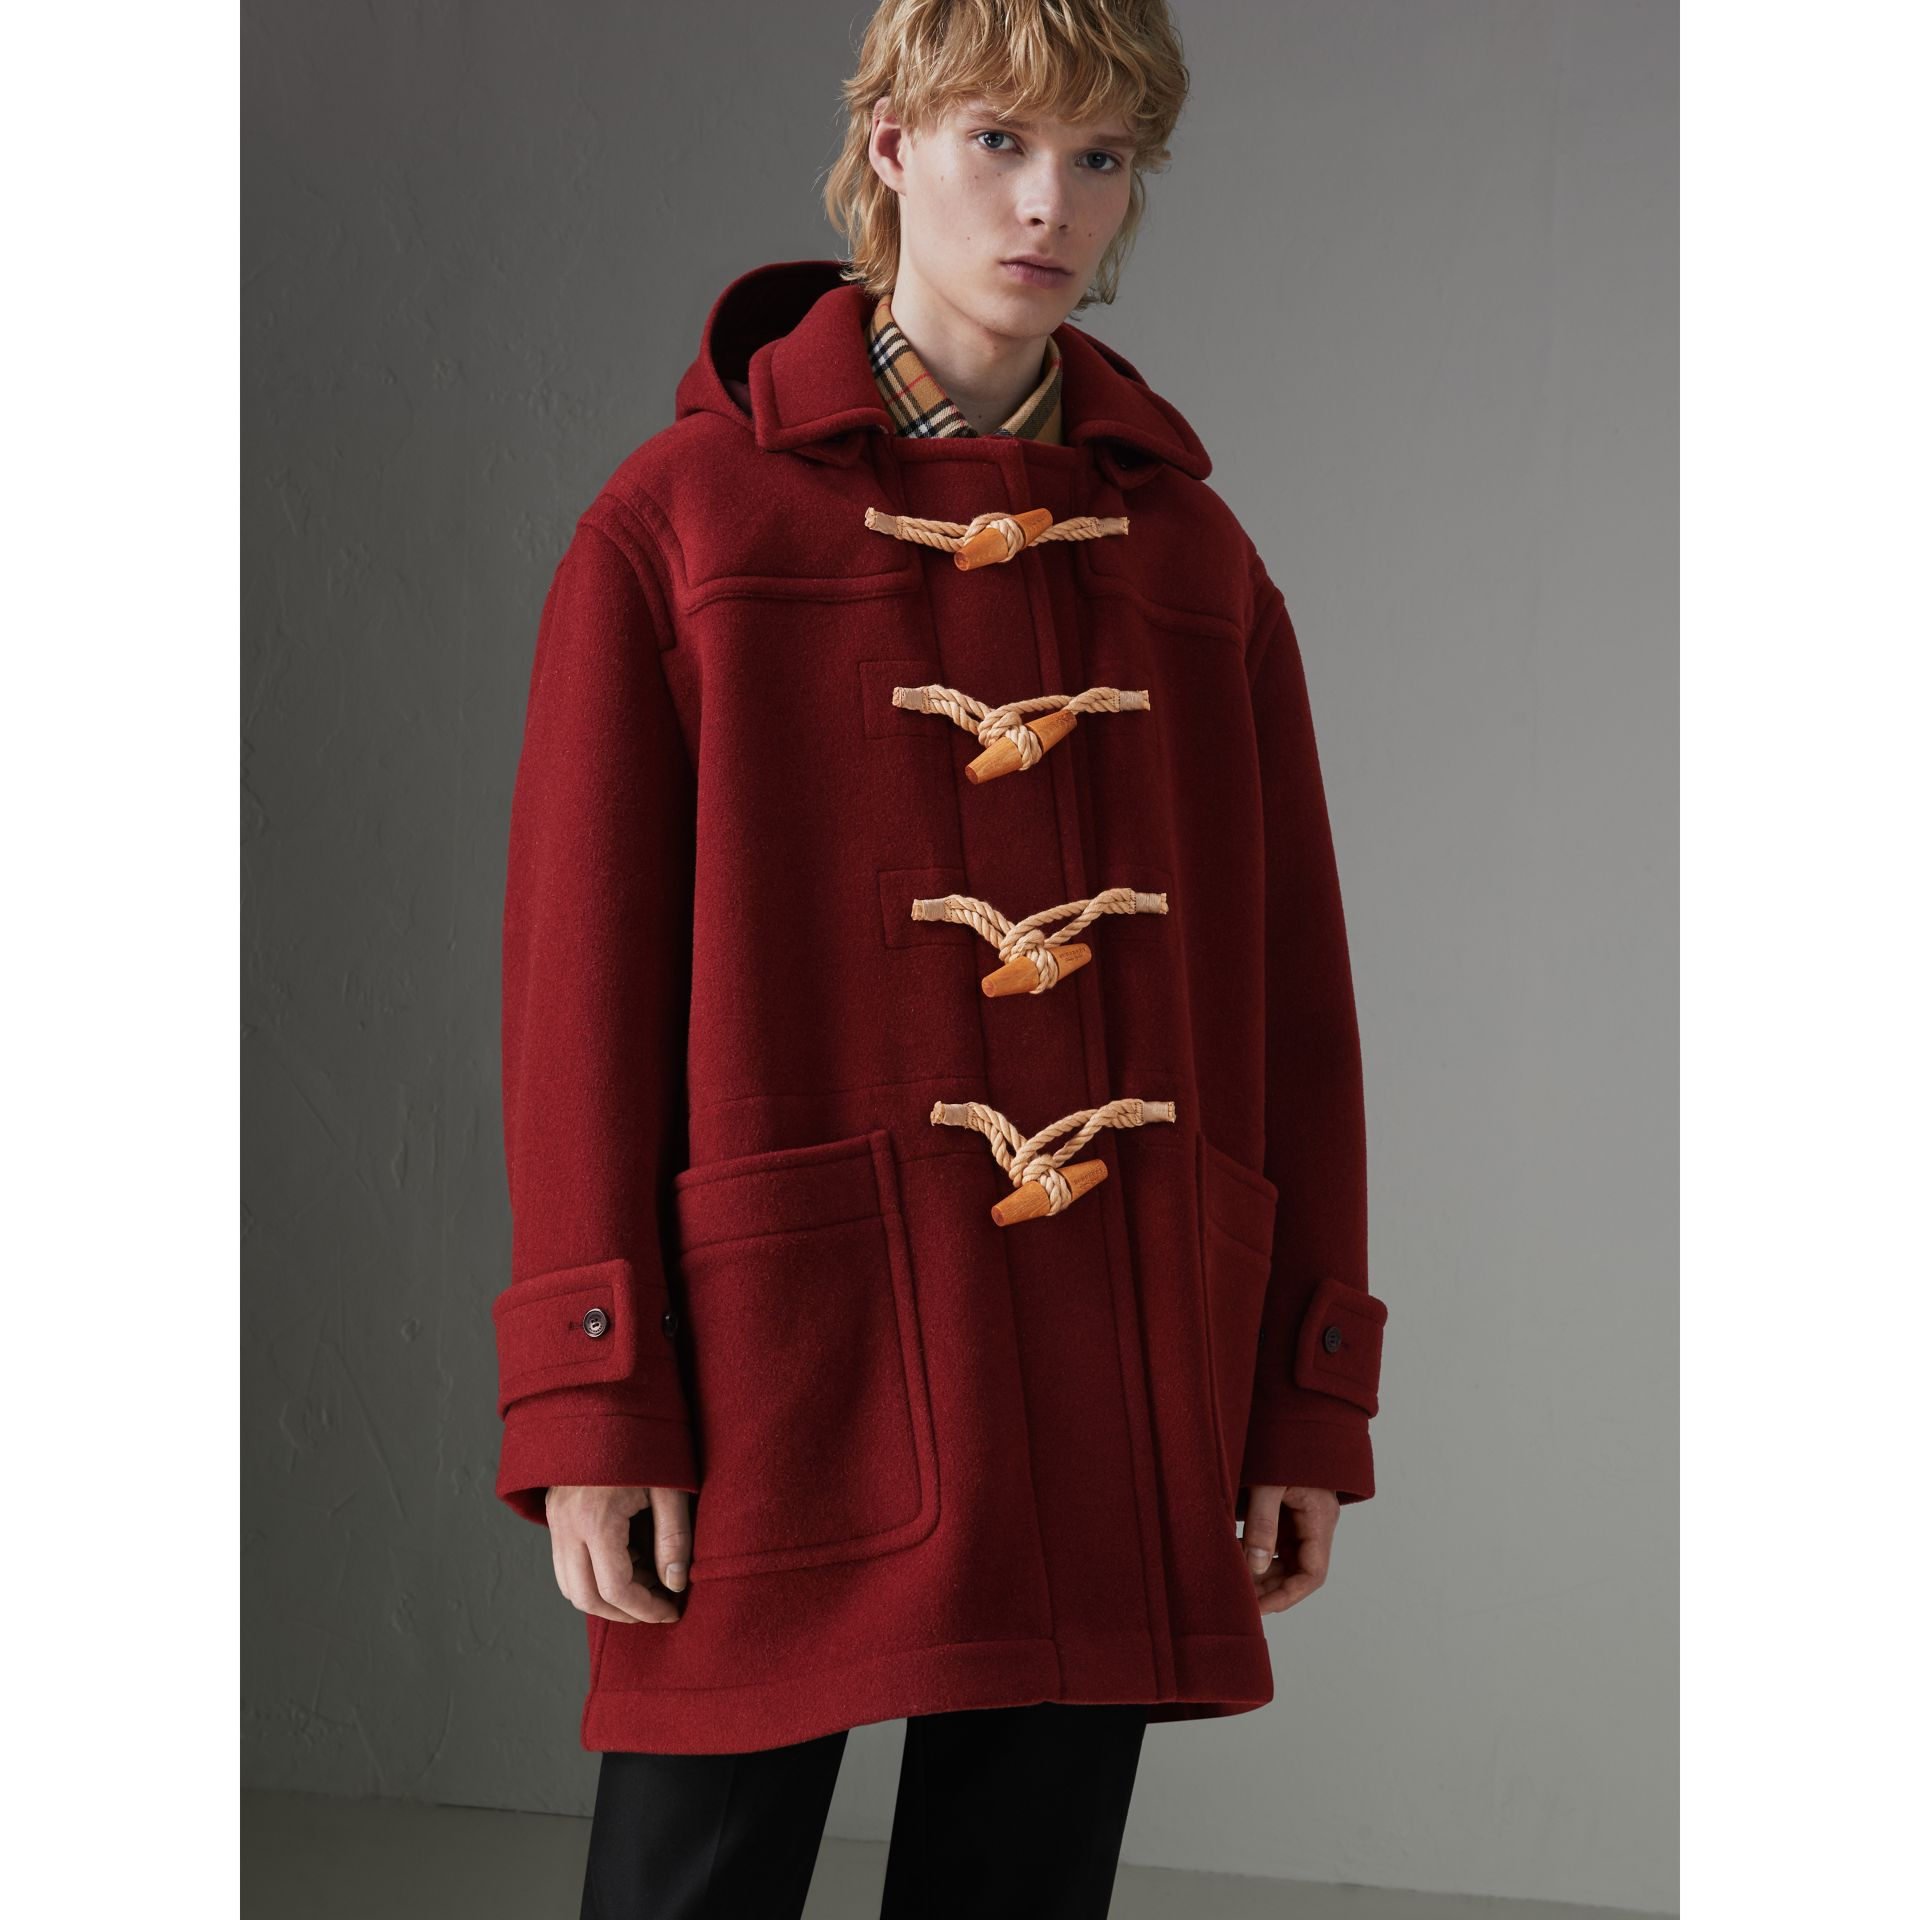 Gosha x Burberry Oversized Duffle Coat in Claret | Burberry United Kingdom - gallery image 6